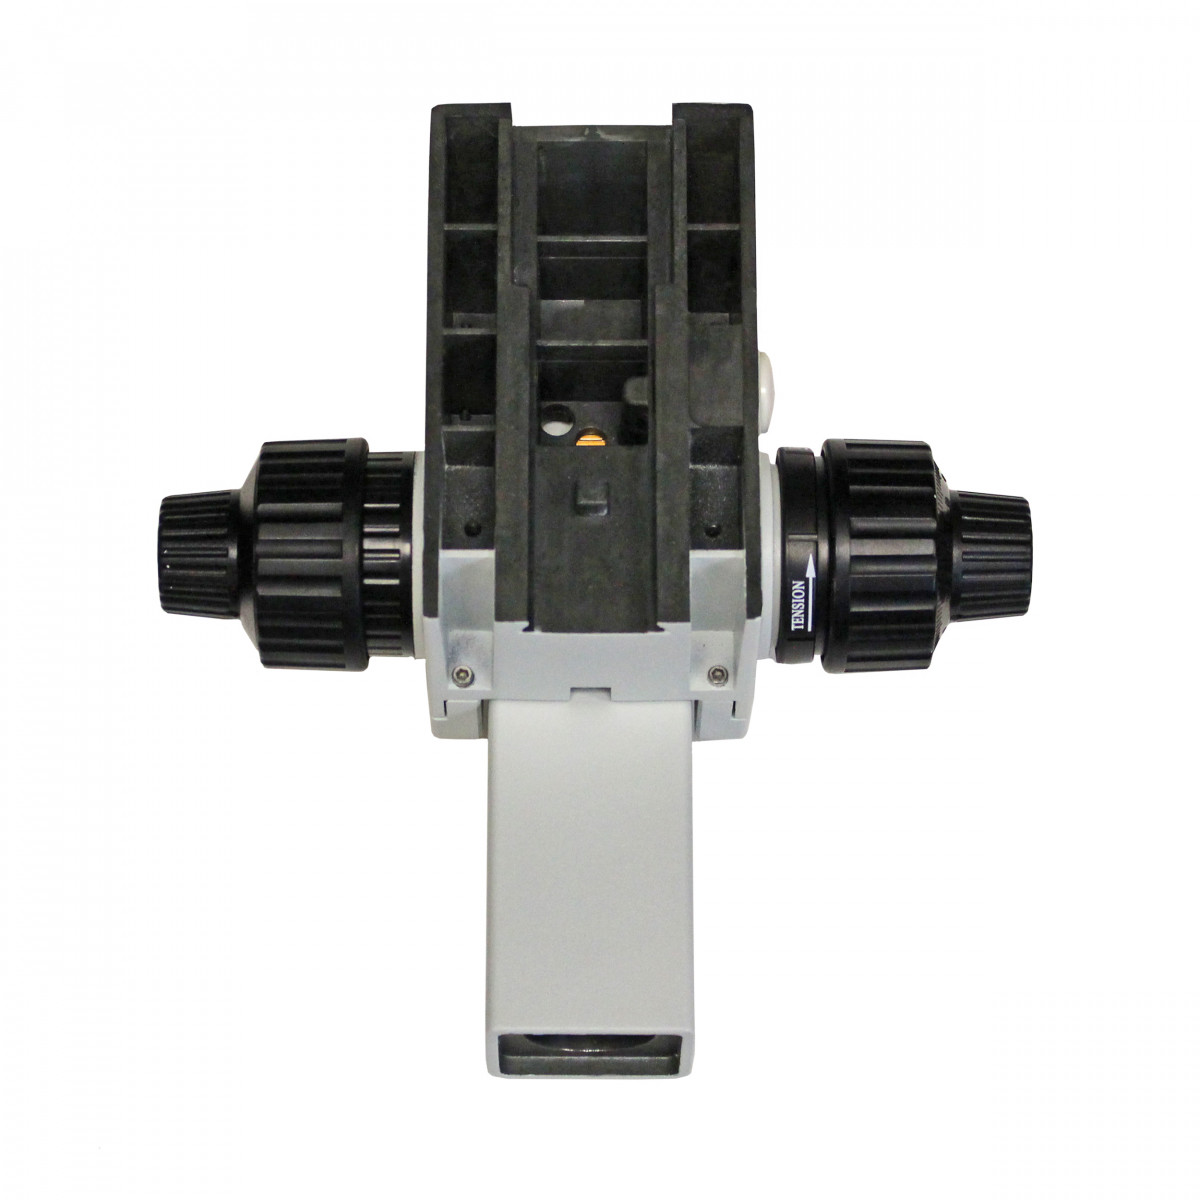 112-14-10-Coaxial Focusing Arm - Z12 Series - Mounting View